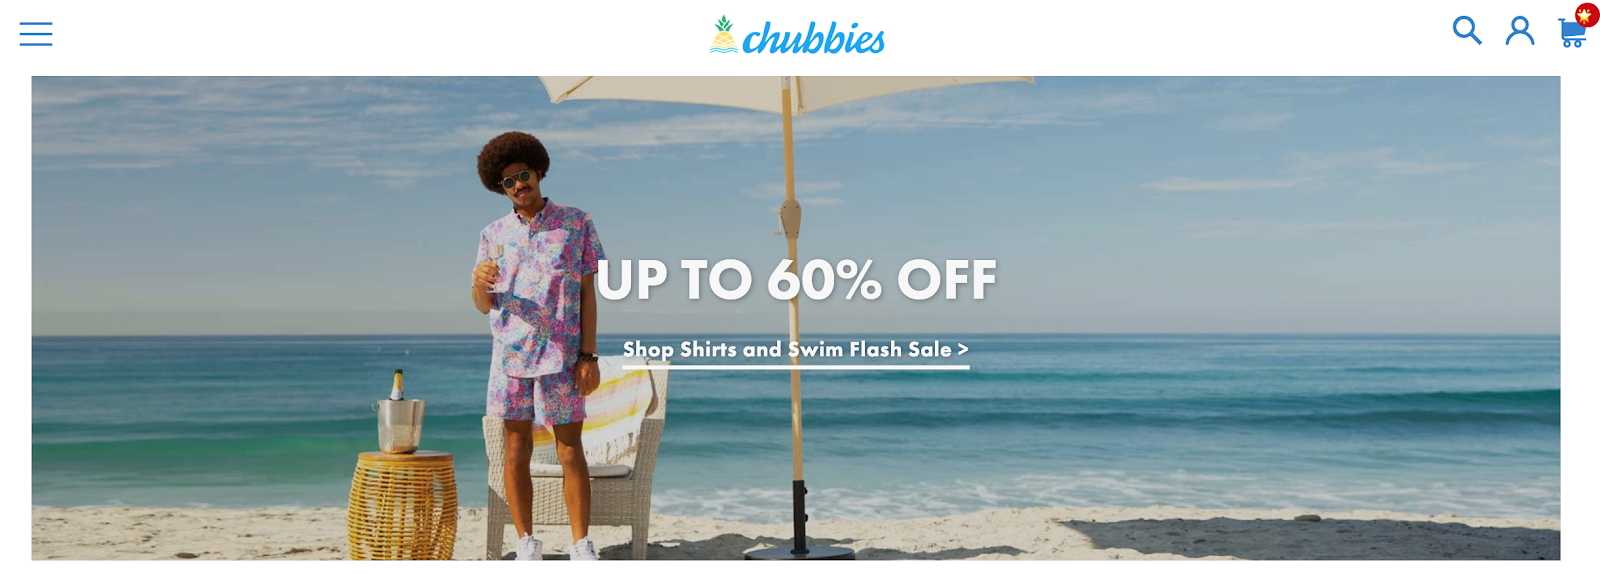 Chubbies homepage with a man on the beach in the background